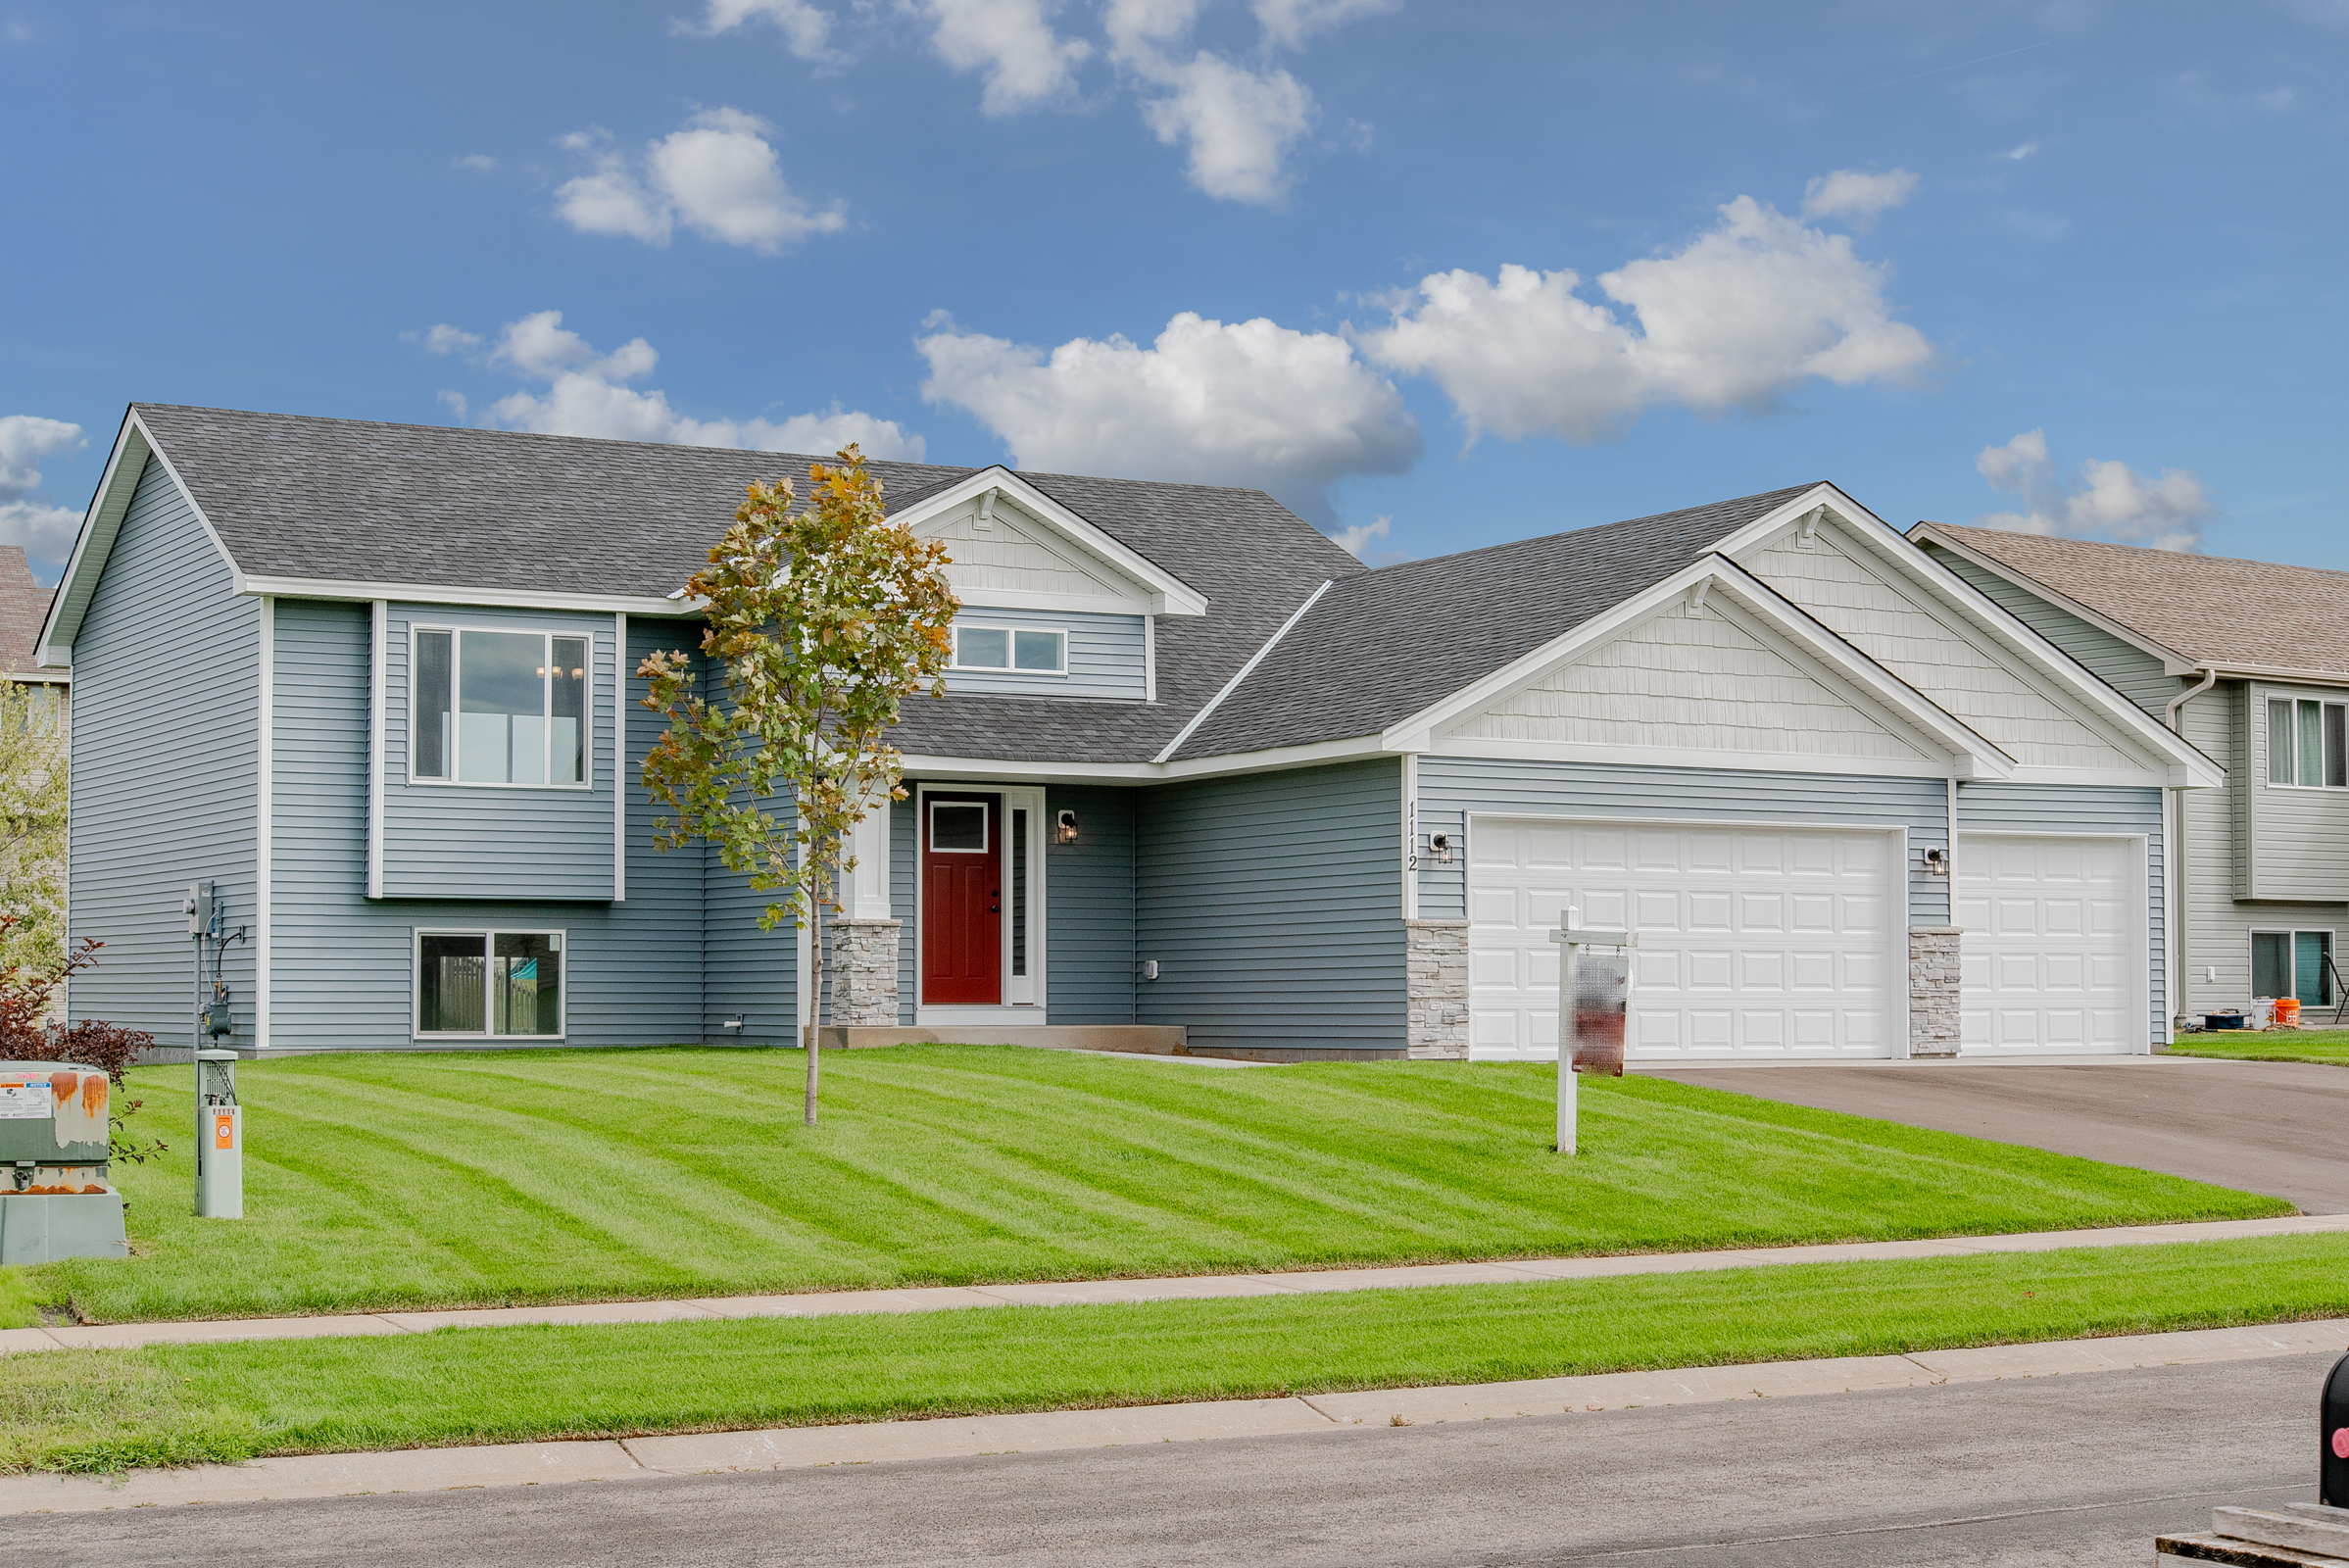 1112 Ironwood Ave SWIsanti, MN - The Tay by Easy Living Homes2BR/2BA-1206 FSFSplit Entry Completed New ConstructionAvailable